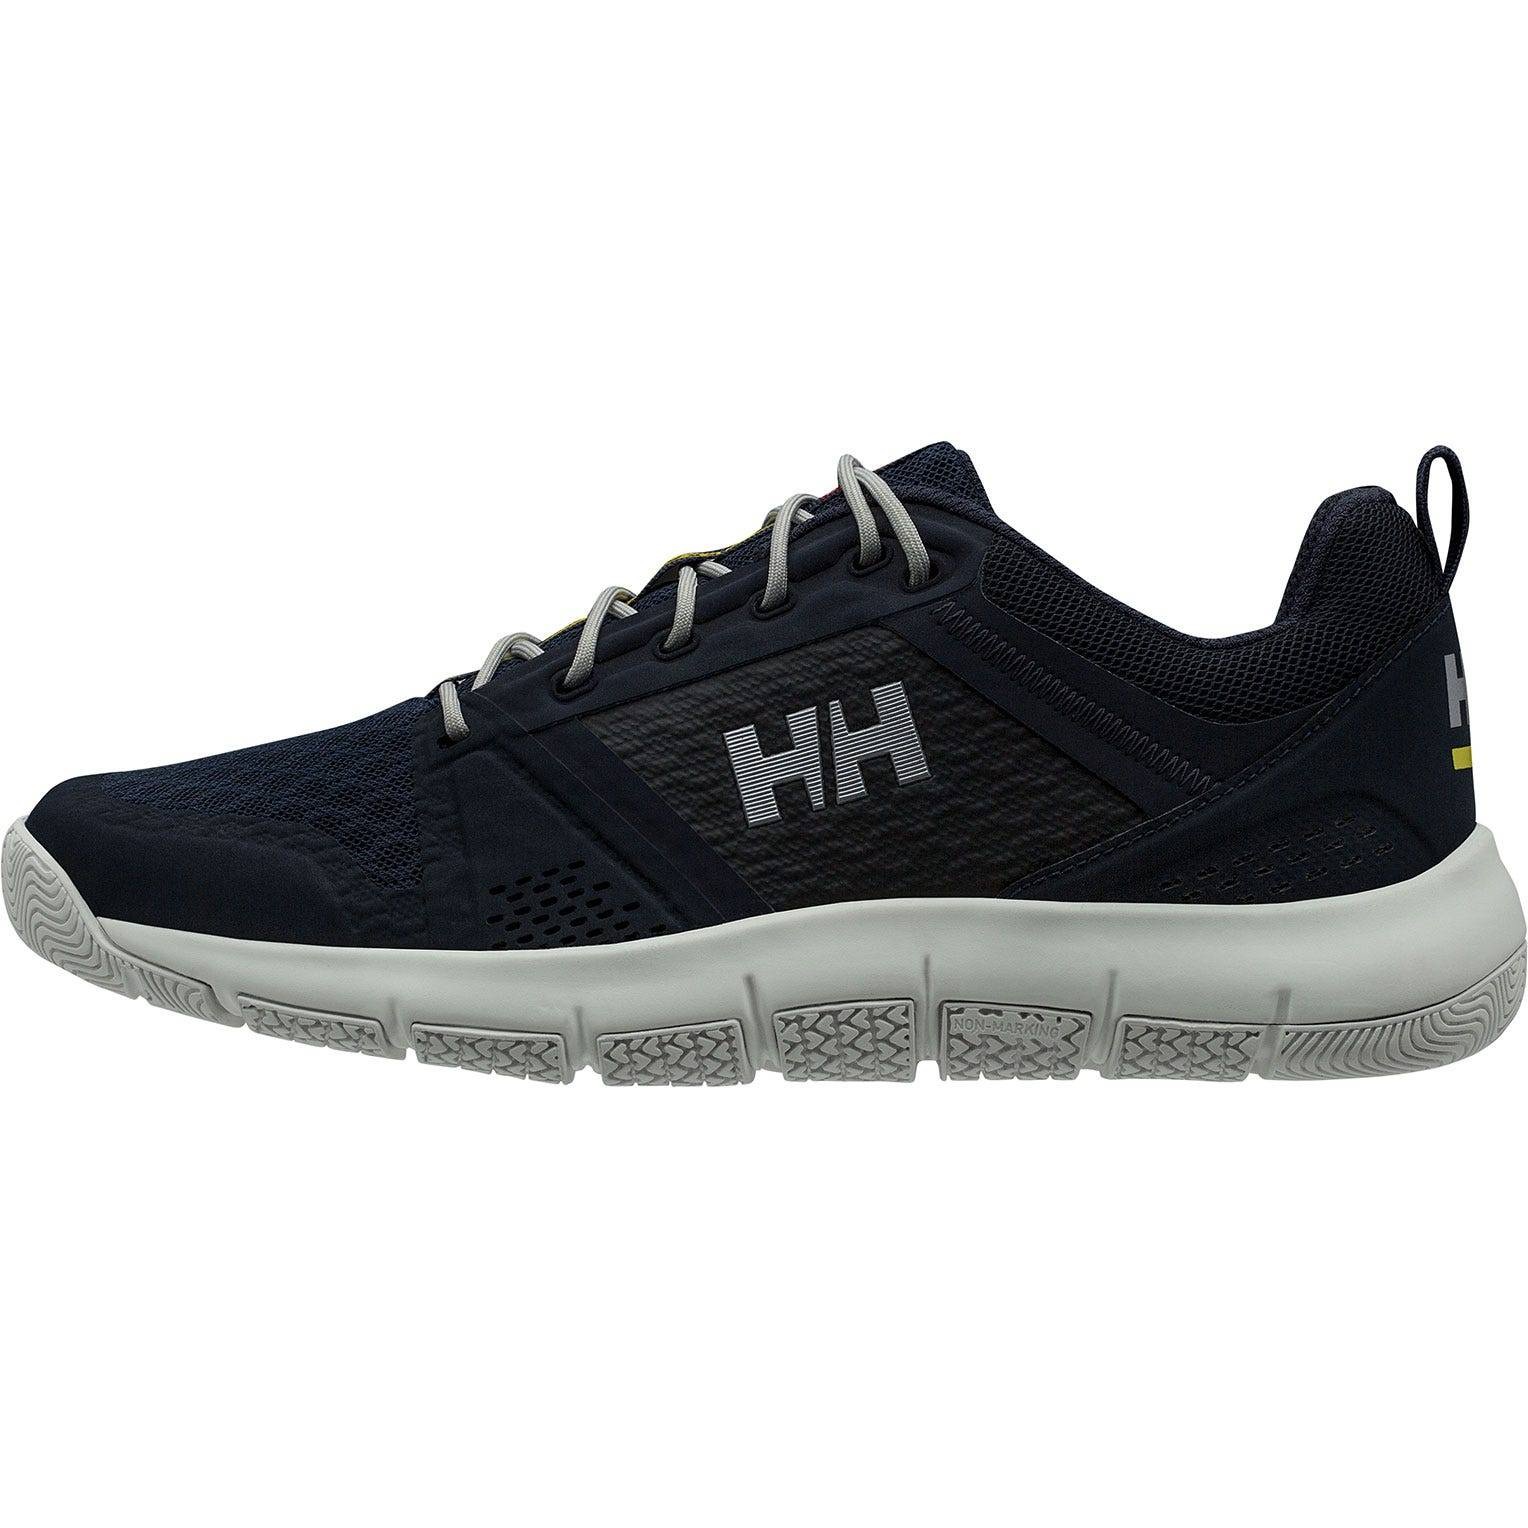 Helly Hansen W Skagen F1 Offshore Womens Sailing Shoe Navy 37.5/6.5